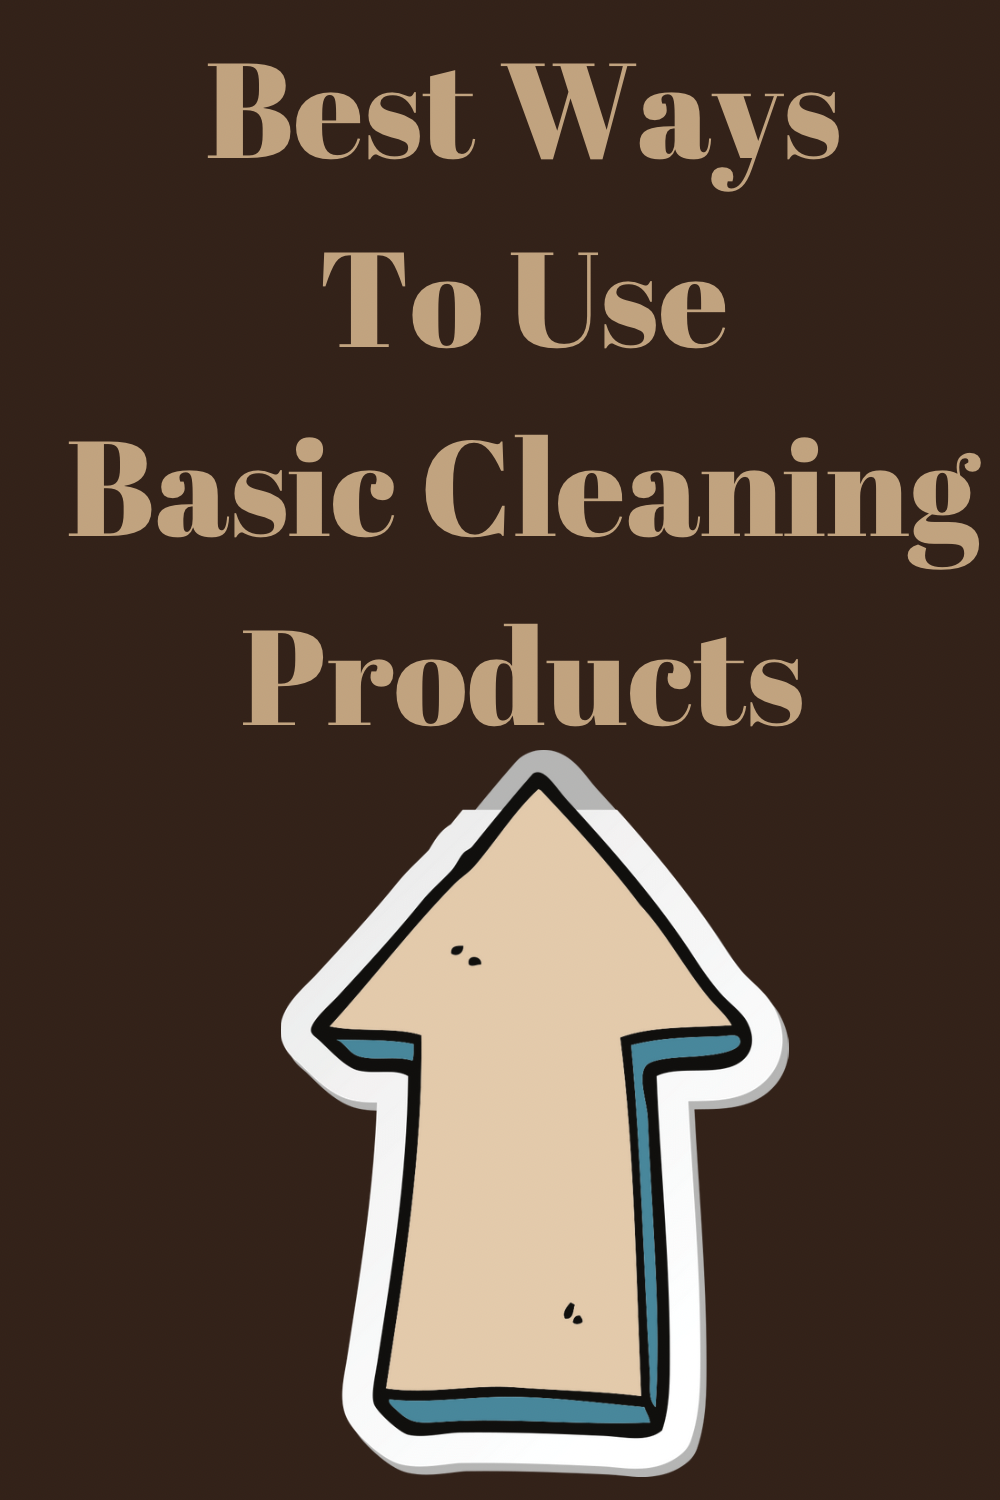 Best Ways to Use Basic Cleaning Products